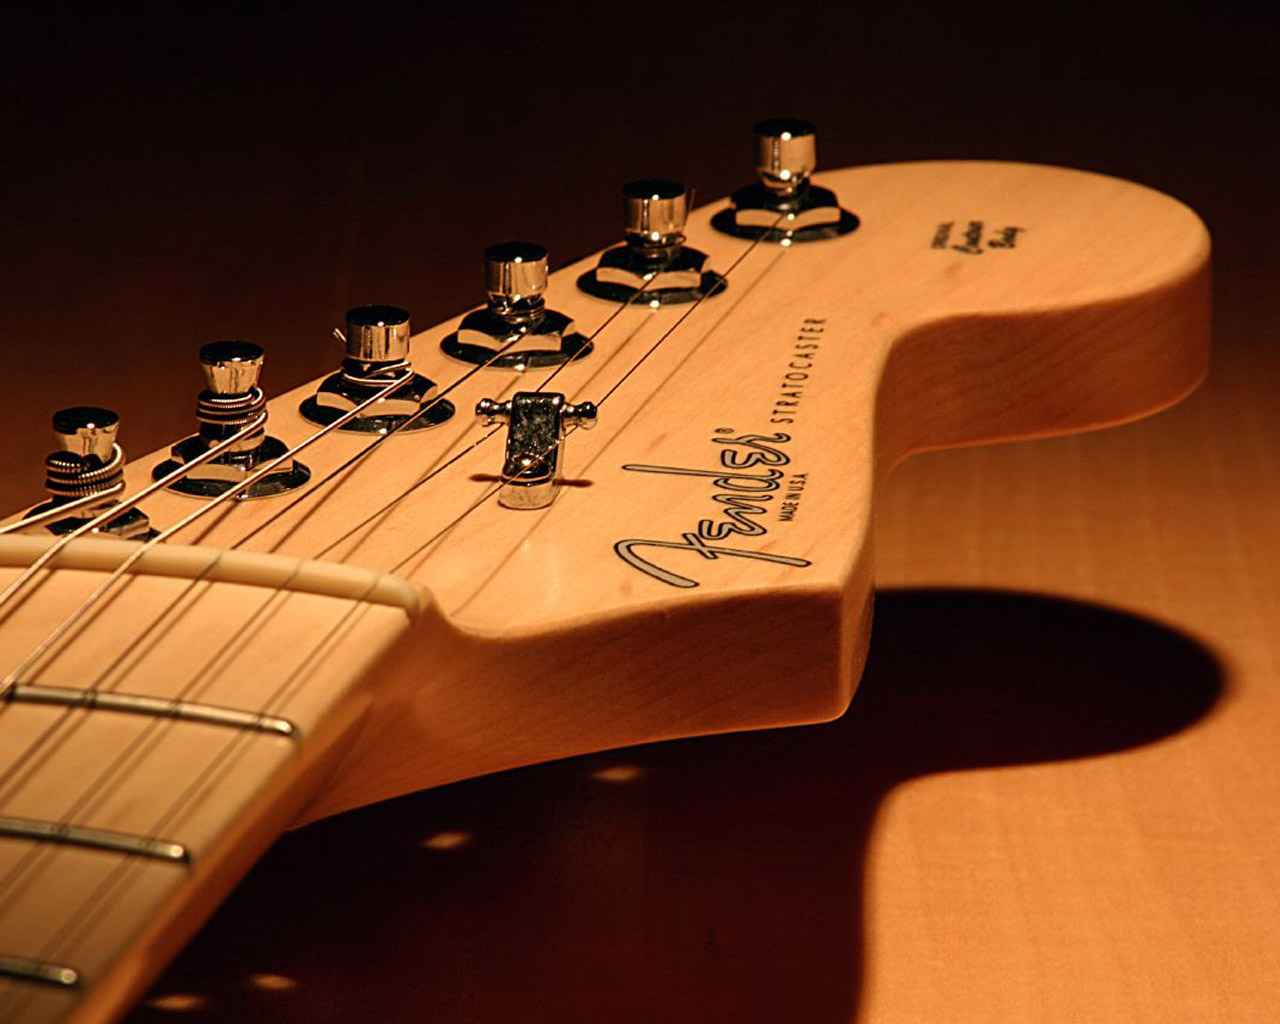 Guitar Wallpaper   Fender Stratocaster Headstock   1280x1024 Great 1280x1024